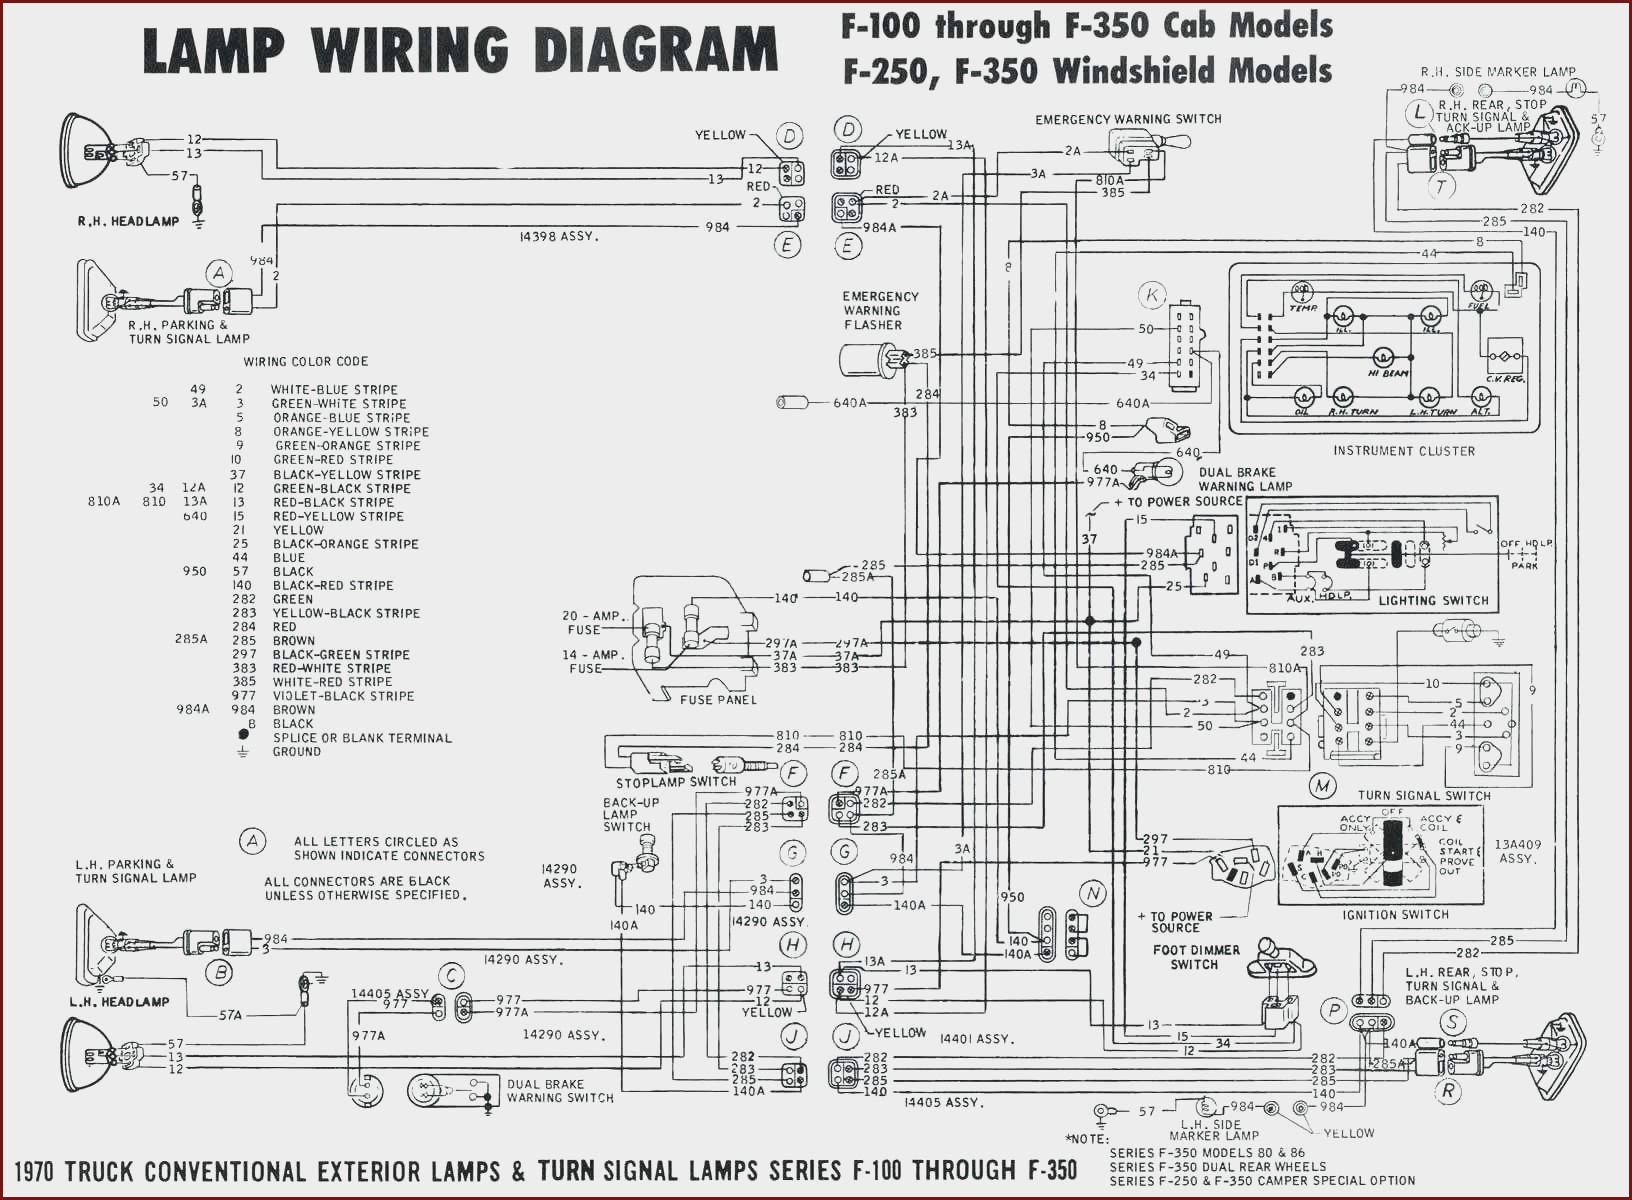 Nissan Altima Engine Diagram 2012 Nissan Sentra Stereo Wiring Diagram at Manuals Library Of Nissan Altima Engine Diagram